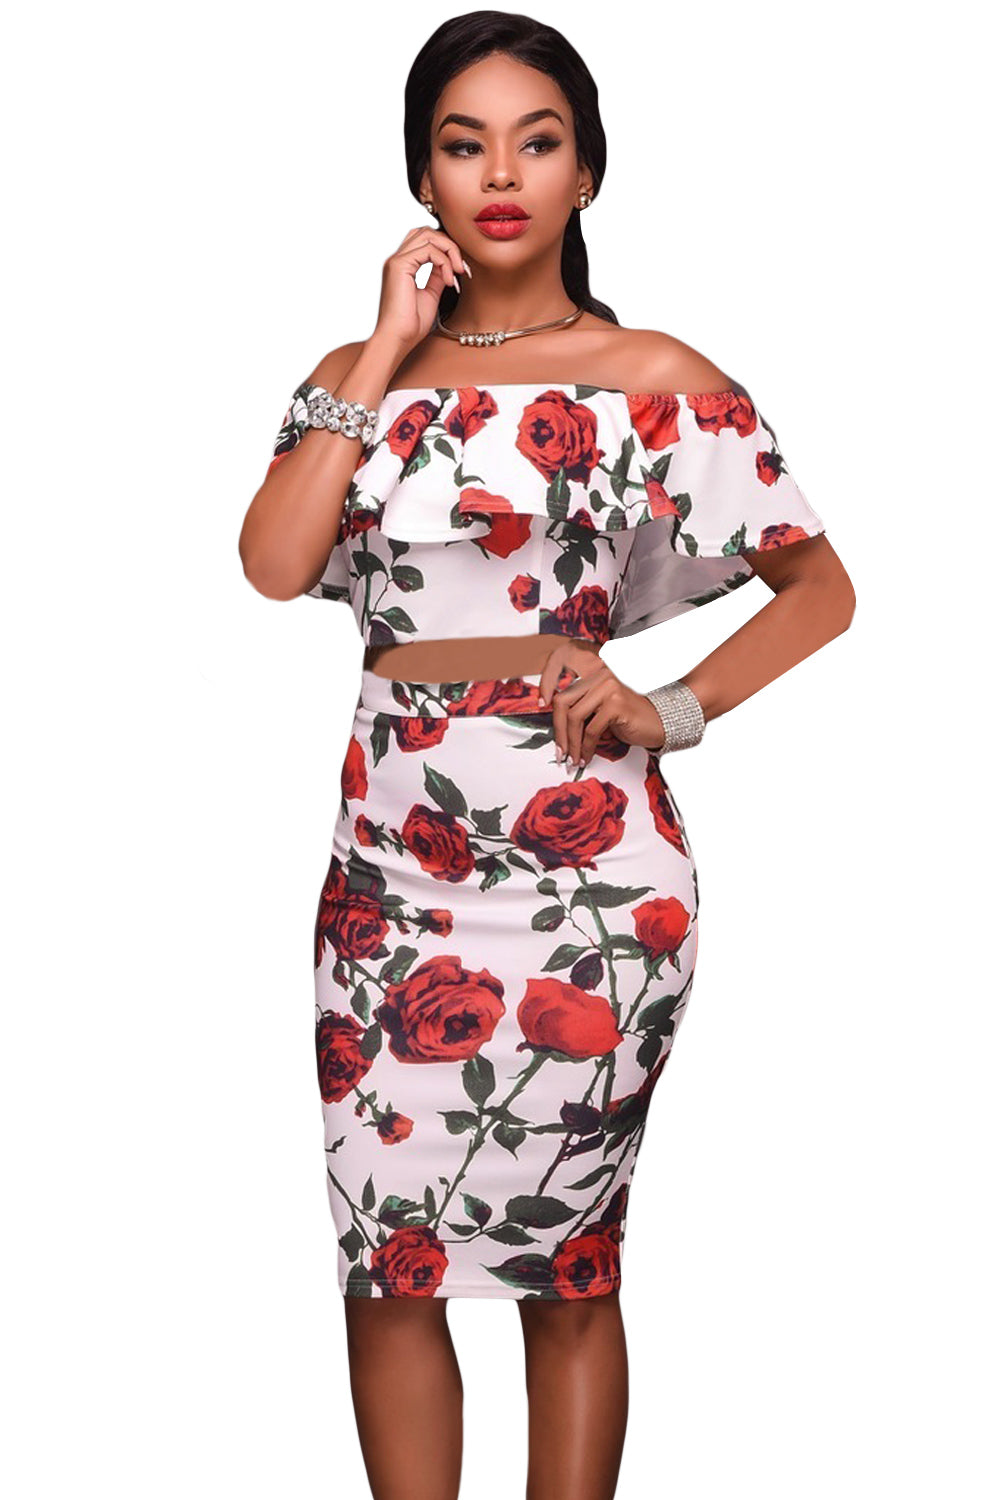 Red Roses Print Two-piece - Online Women Skirt sets